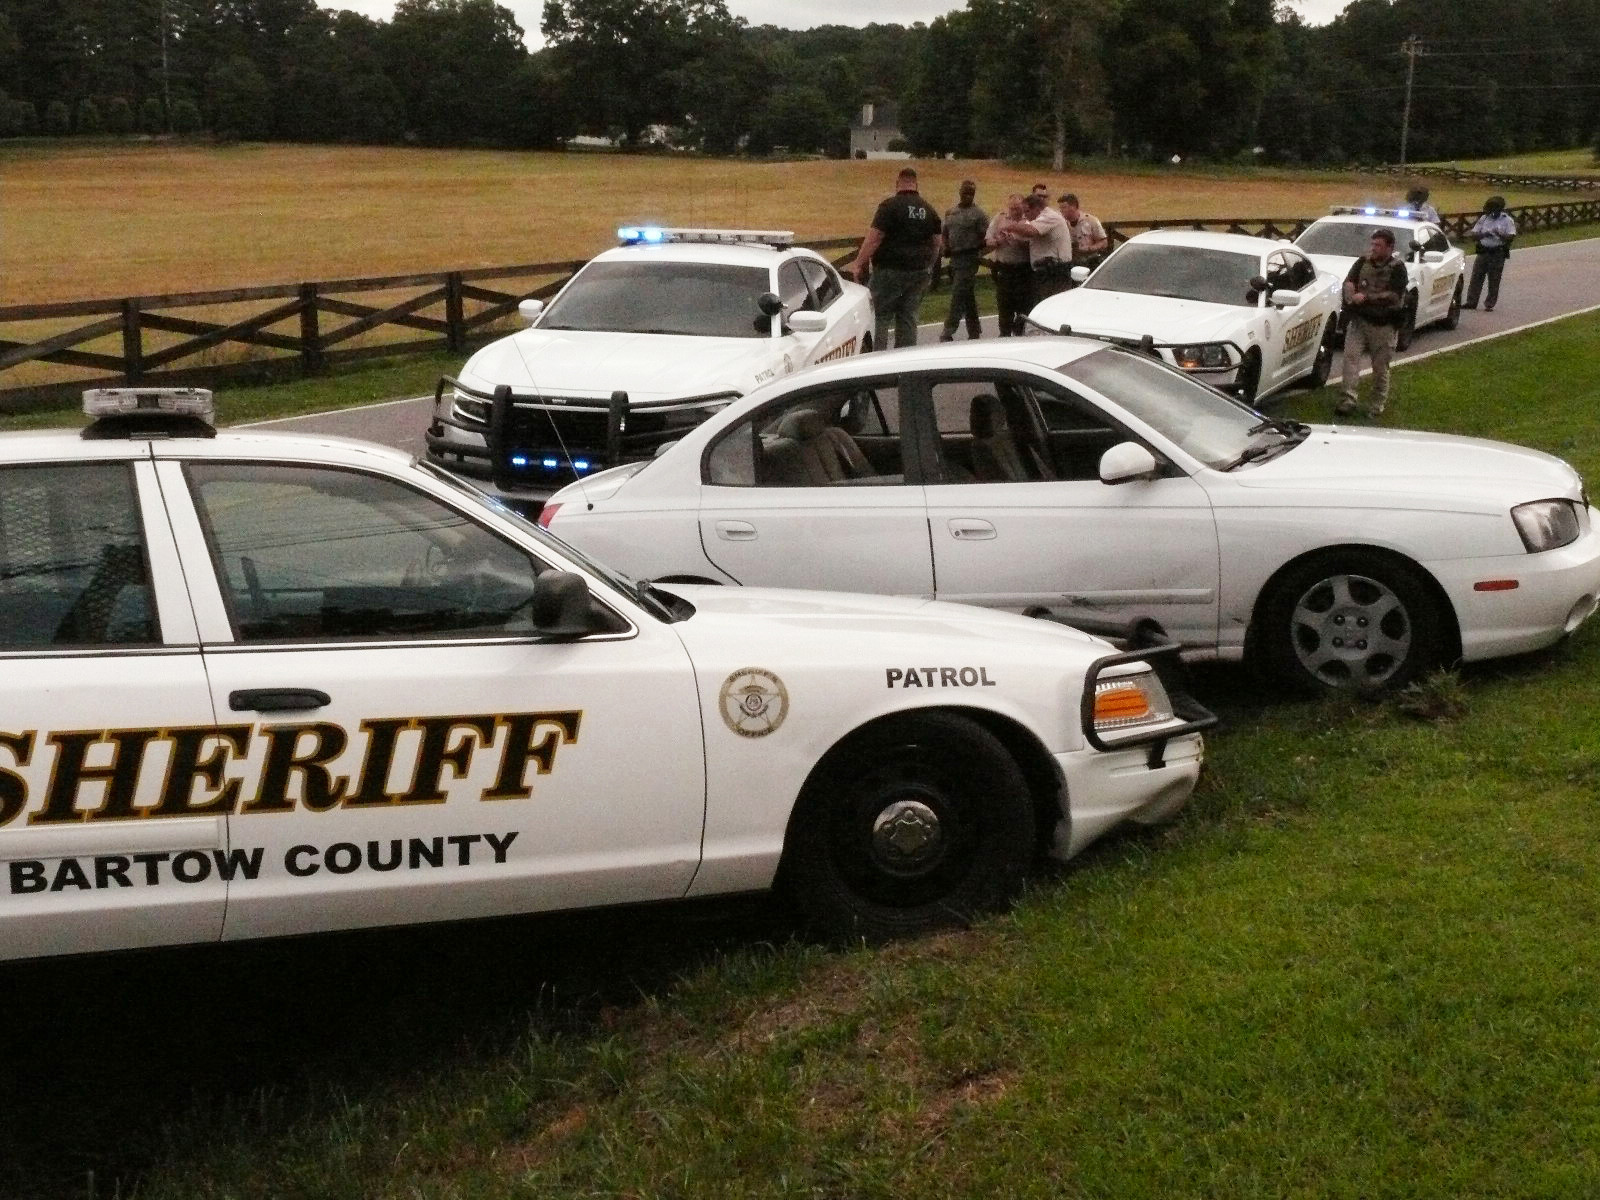 A Bartow County Sheriff's Deputy forced a late-model Toyota into a ditch on Cass-White Road Tuesday morning. Ten patrol cars from the Georgia State Patrol and Bartow County Sheriff's Office chased a Tennessee man with a drug warrant. The chase began on Rudy York Road and ended on Cass White Road near Shinall Gaines Road.